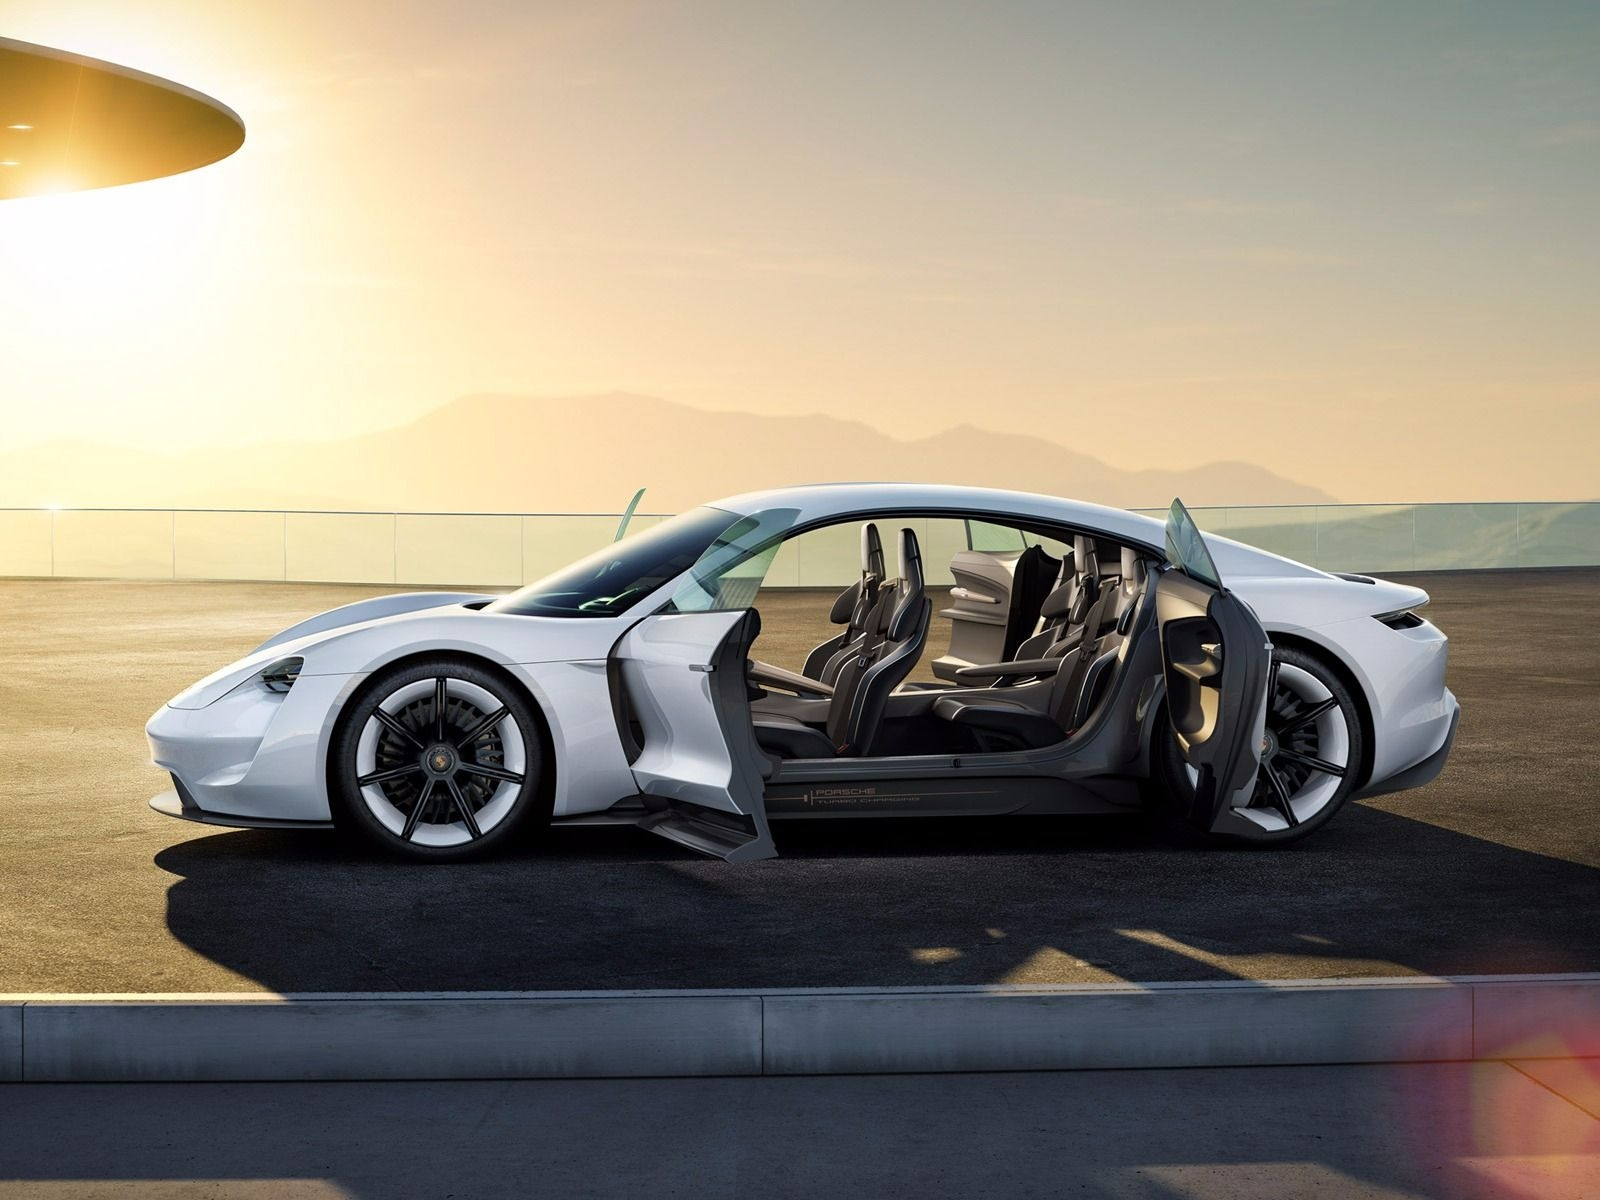 Porsche Mission E All-Electric Car: Pictures, Facts - Business Insider for Electric Porsche